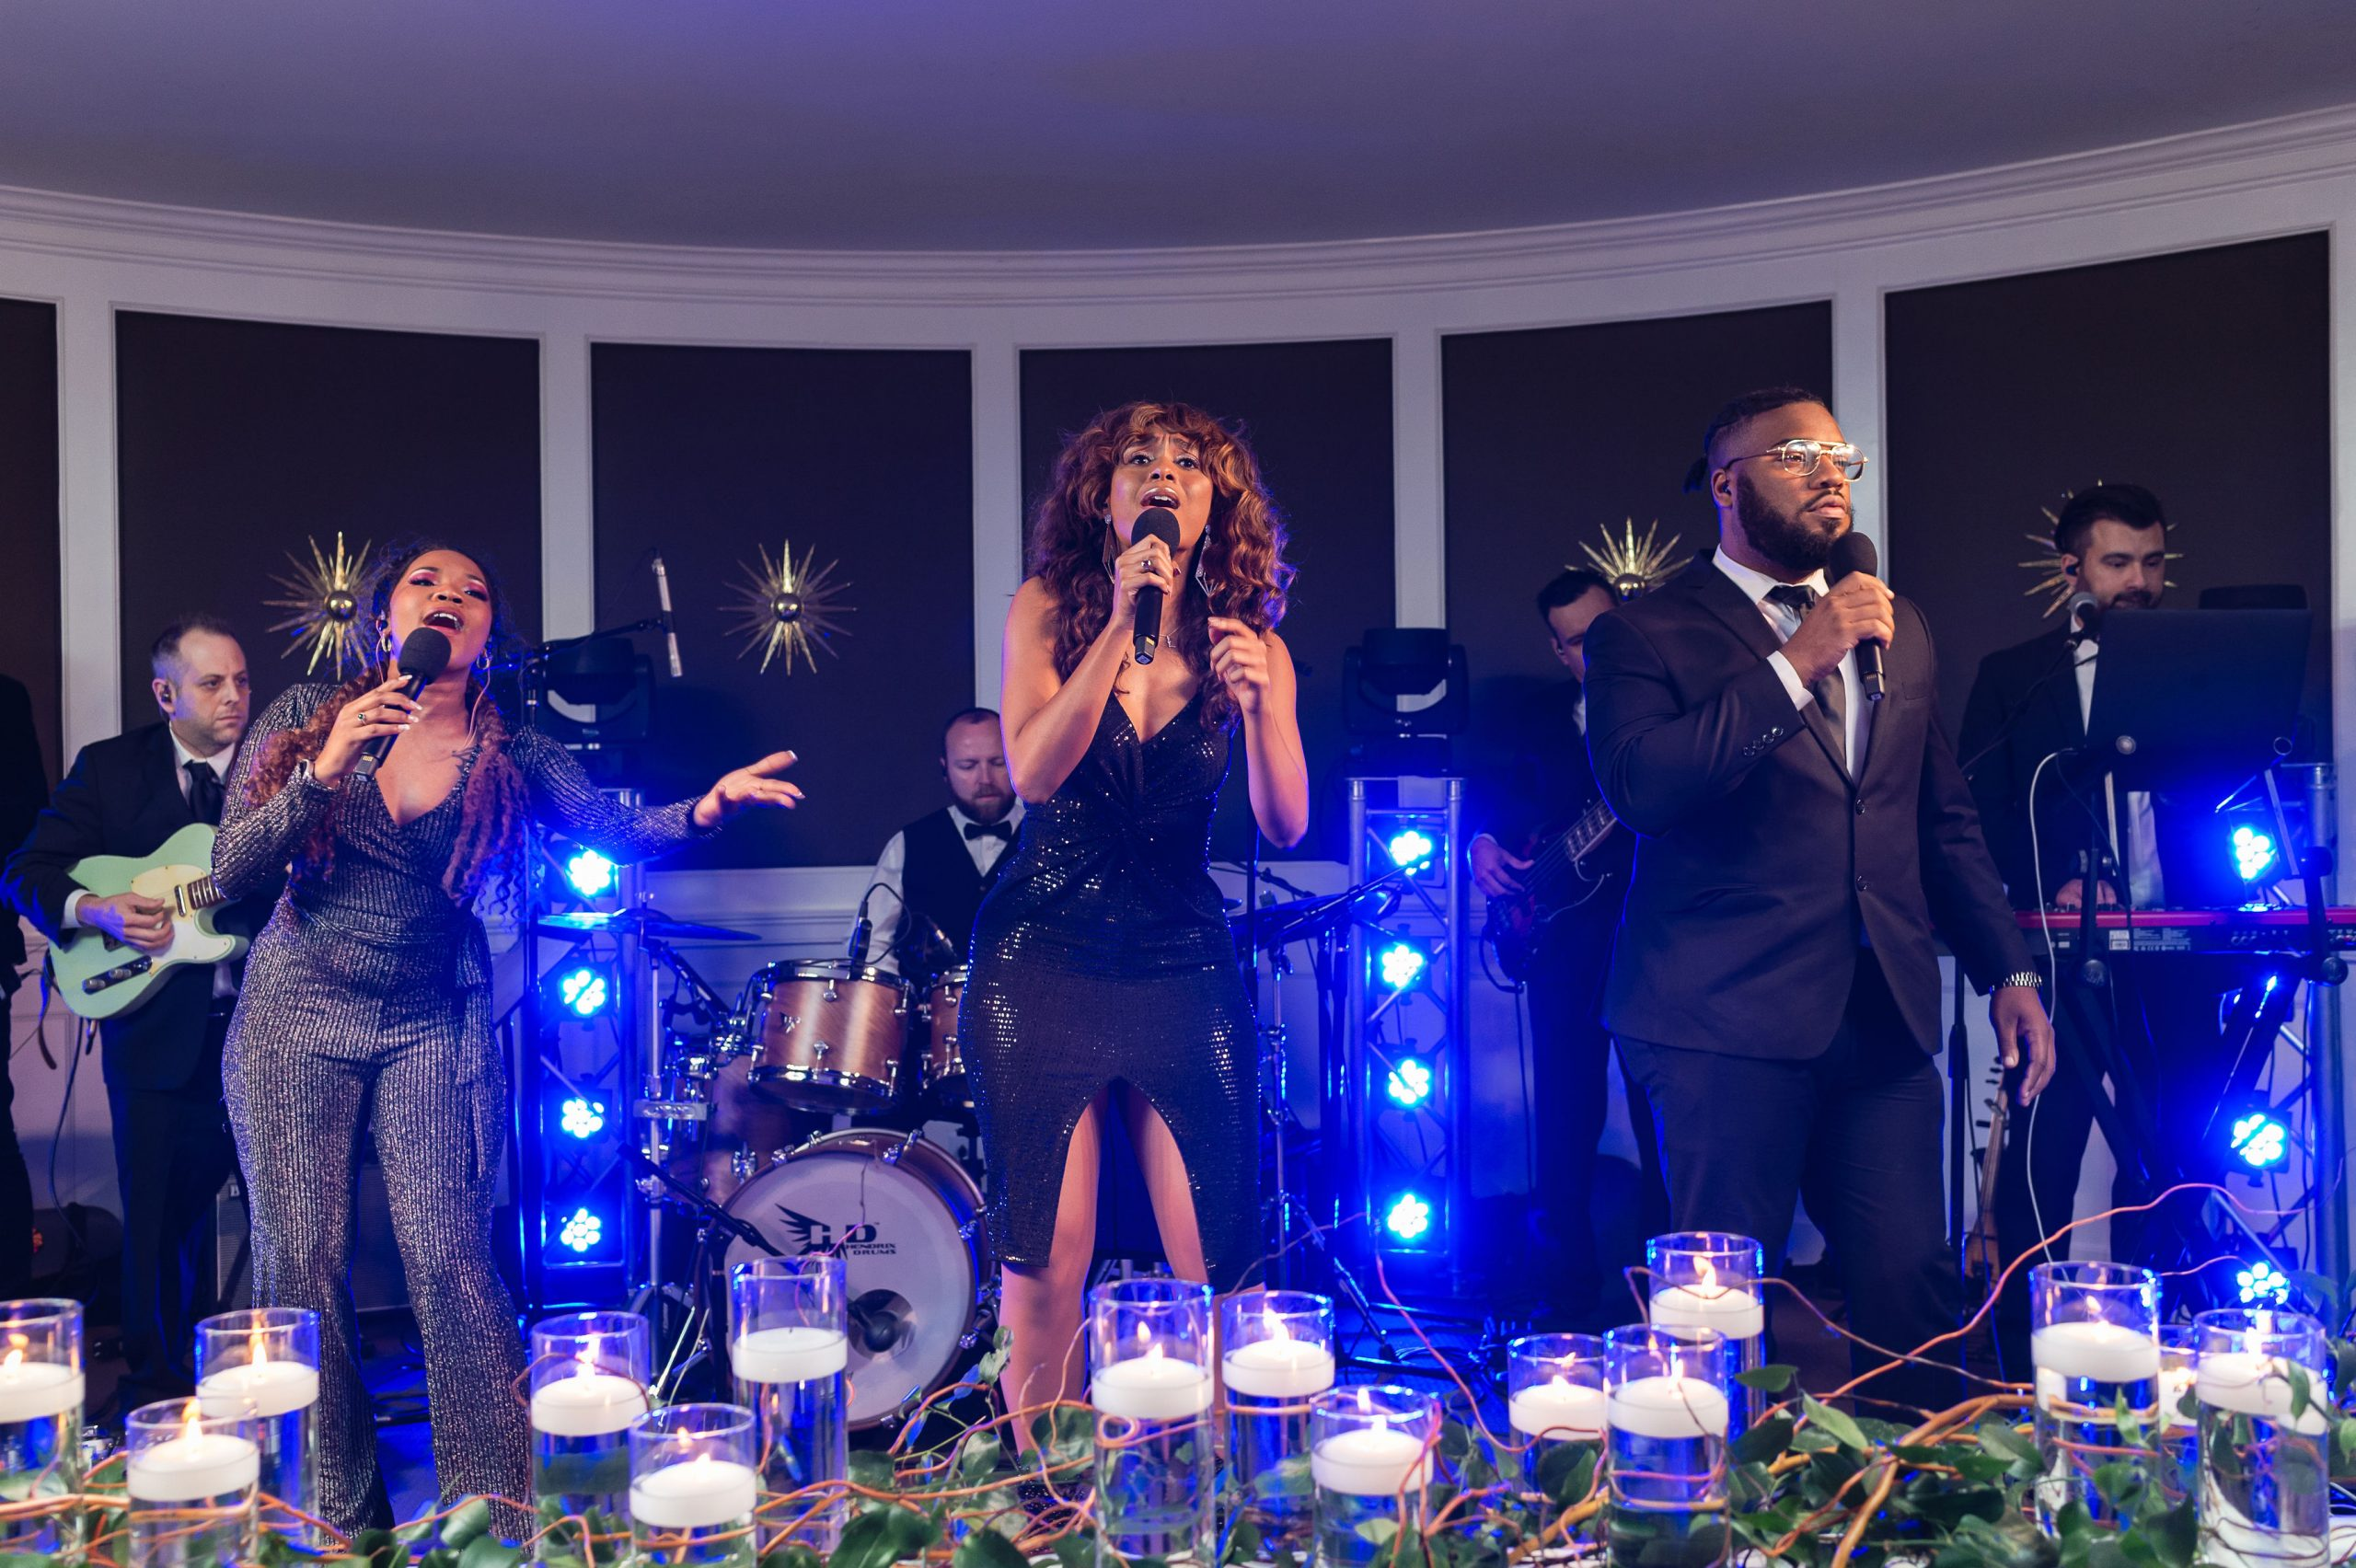 7 things to consider when deciding between a Wedding Band vs DJ - originally published on ivoryandink.com